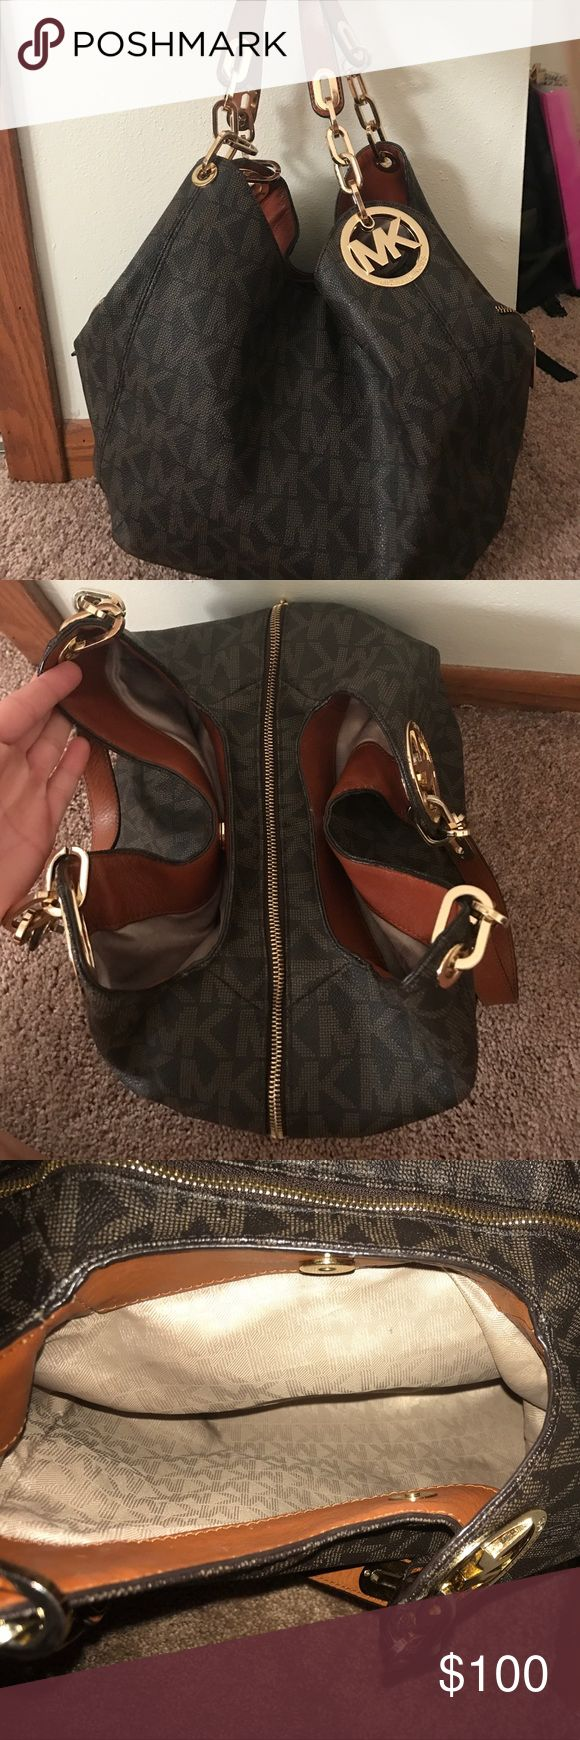 Brown Michael Kors purse Medium brown and cream MK purse. Bought last year, in good condition. Multiple pockets and easy to carry. Really good purse. Michael Kors Bags Shoulder Bags